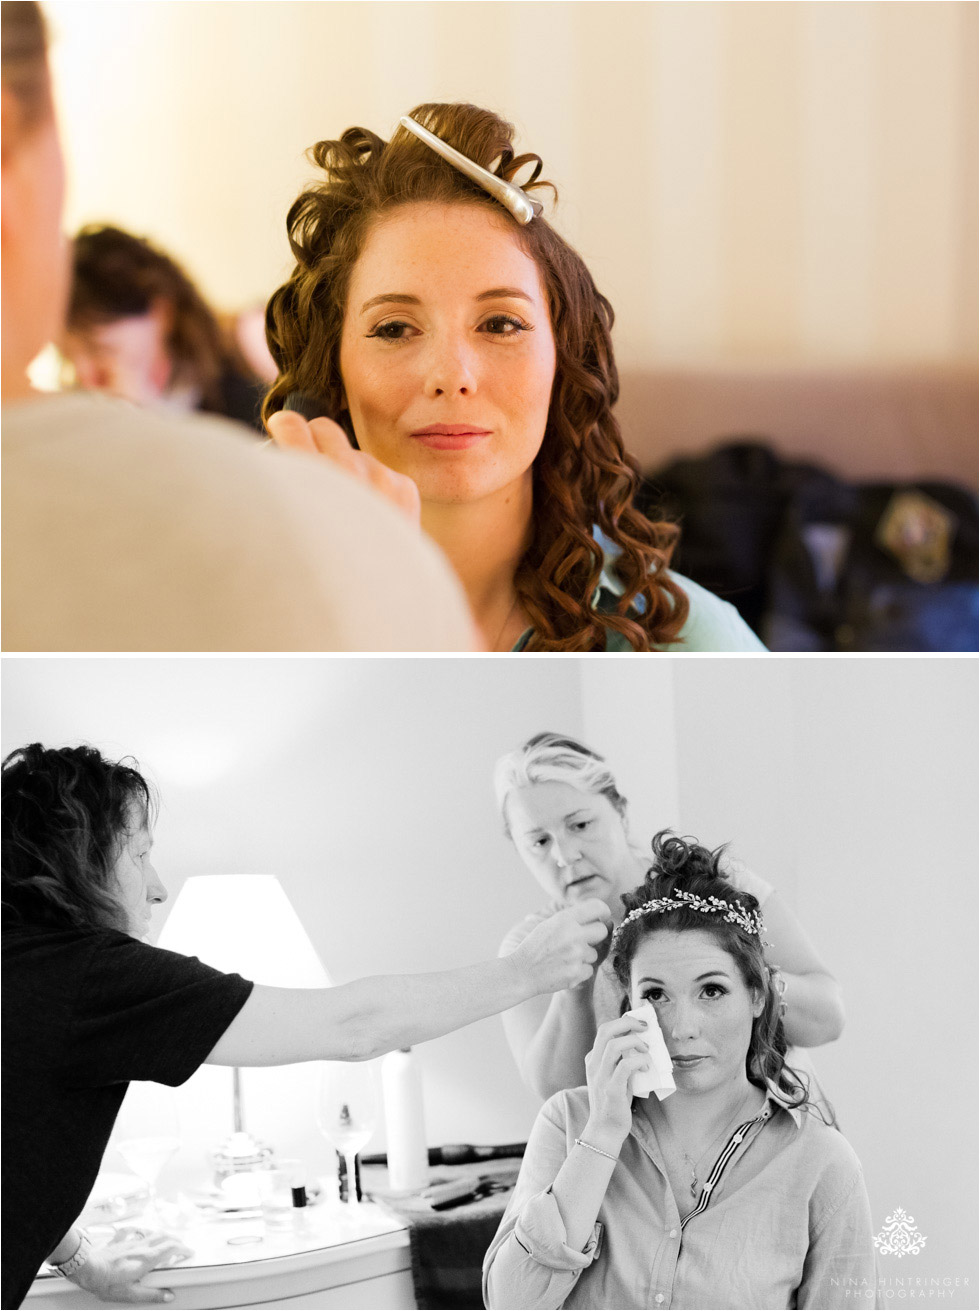 Bride getting hair and make-up done on her wedding day in Italy, Bassano del Grappa - Blog of Nina Hintringer Photography - Wedding Photography, Wedding Reportage and Destination Weddings